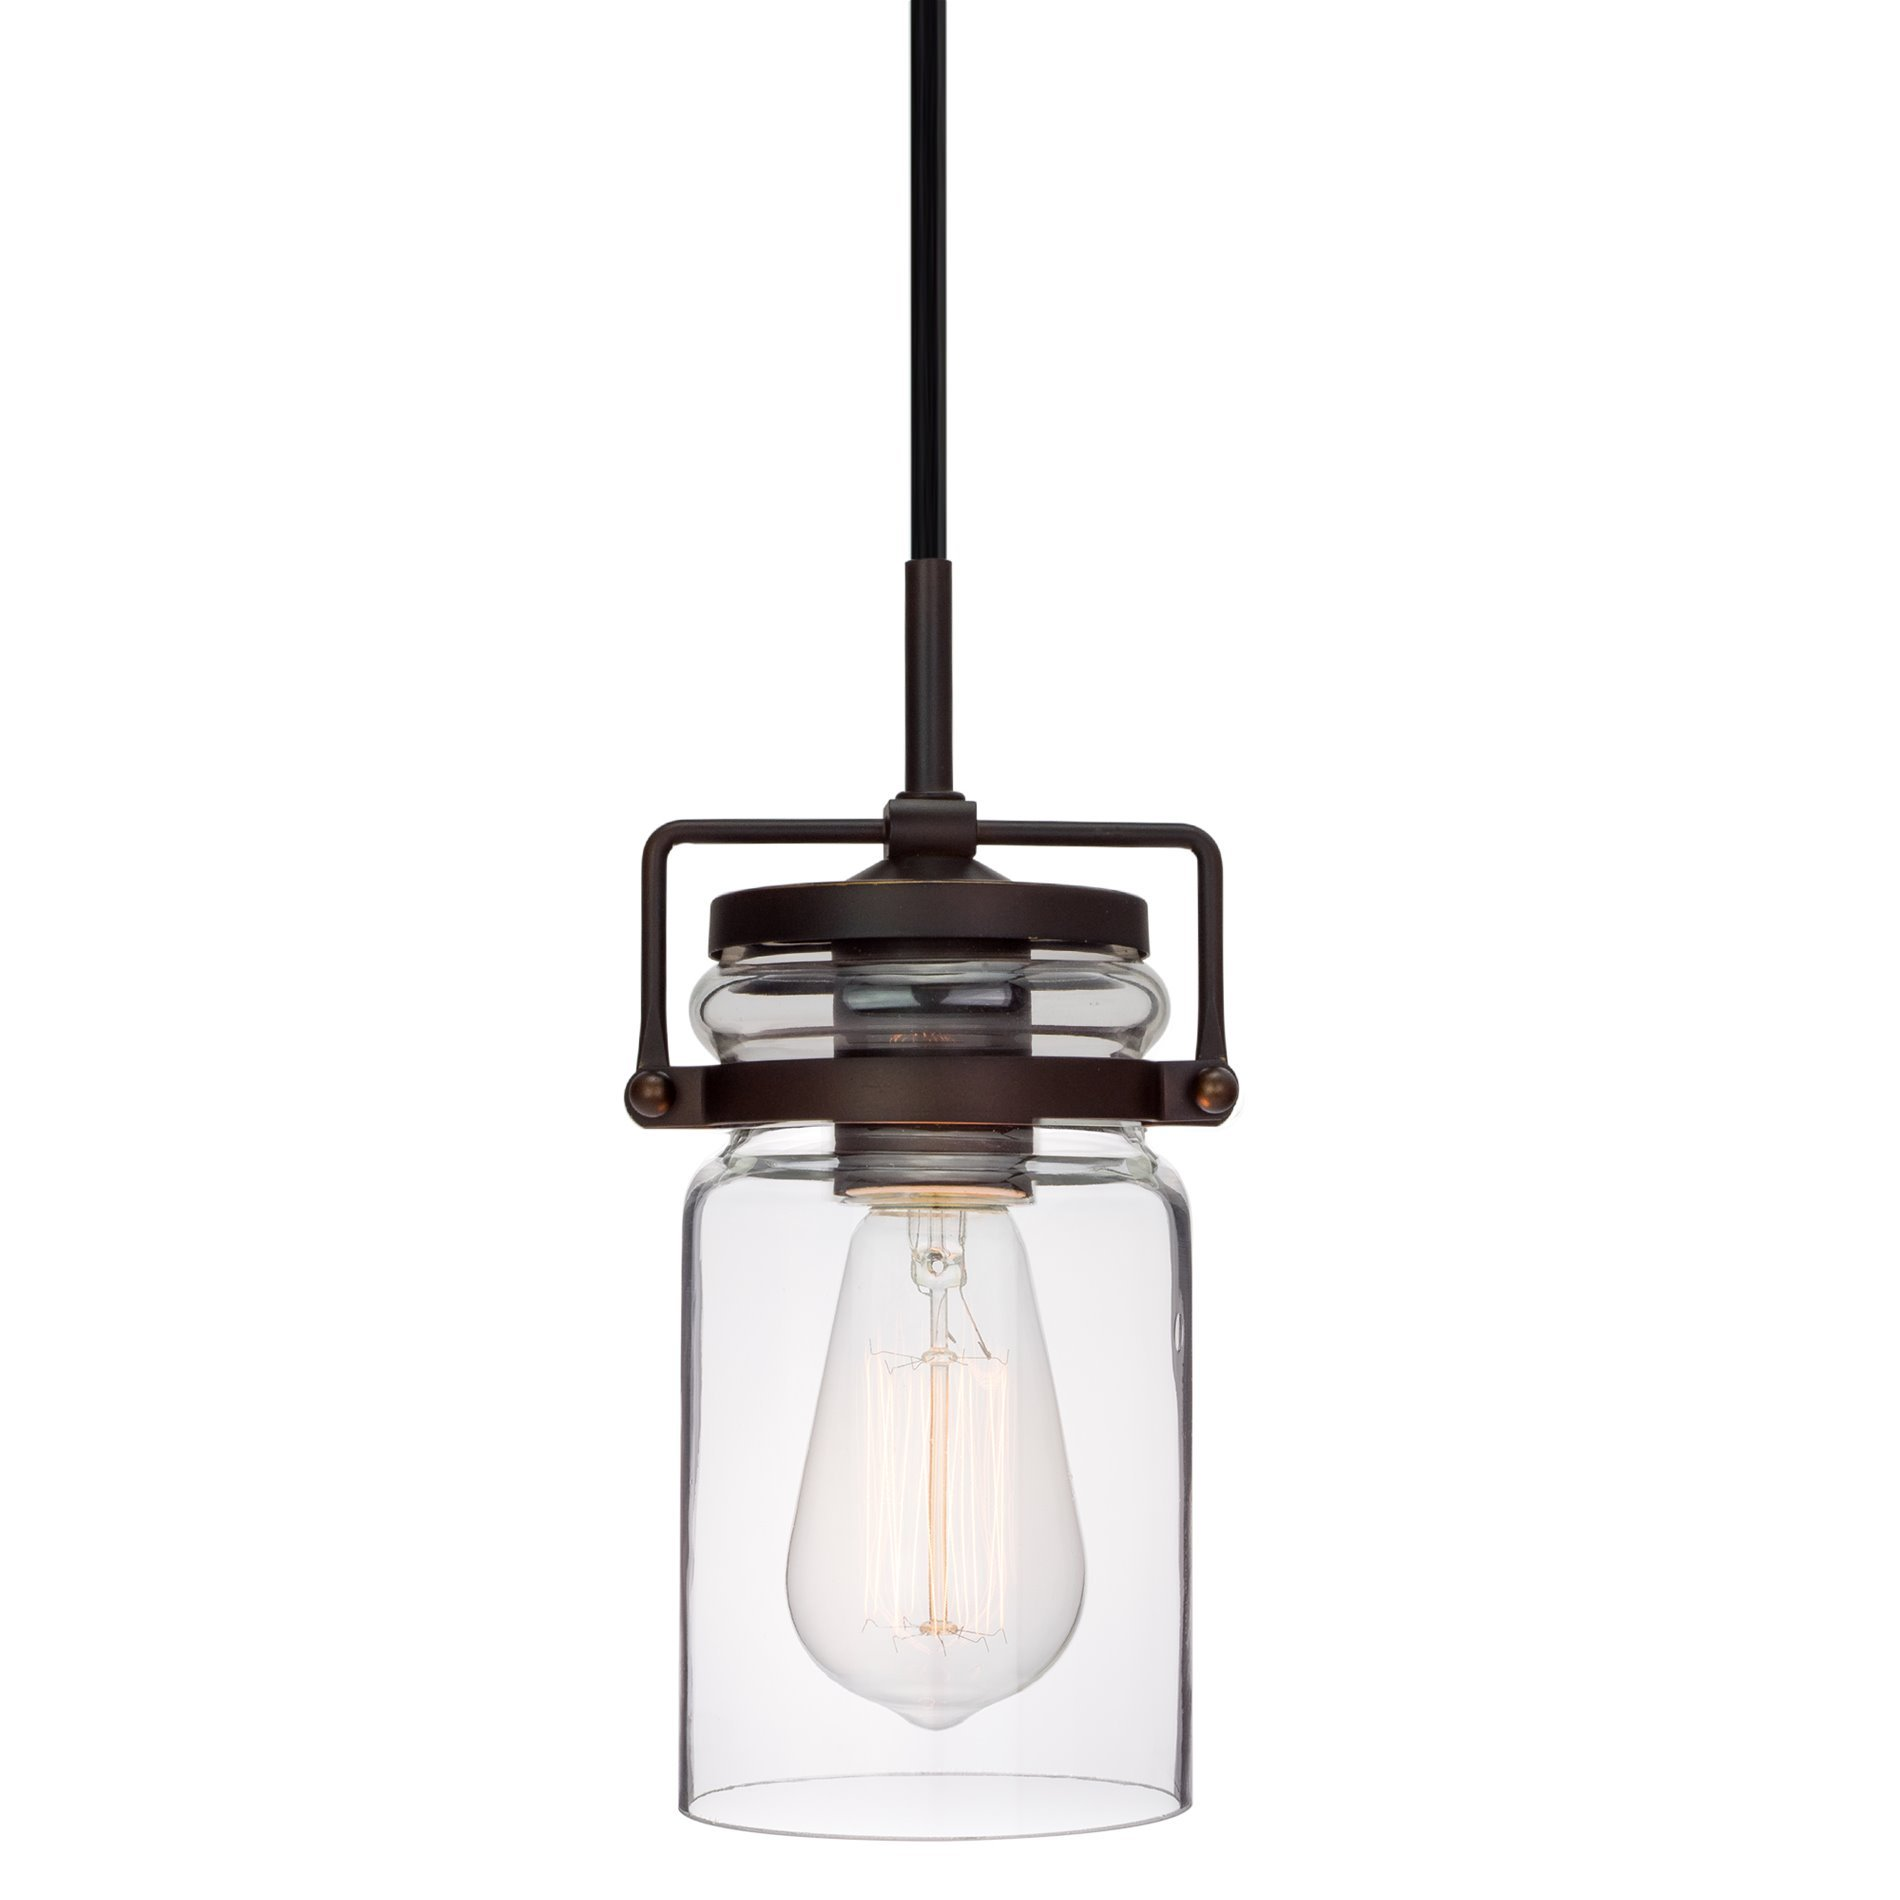 Kira Home Wyer 8'' Modern Industrial Mini Glass Jar Wired Pendant Light, Energy Efficient, Eco-Friendly, Bronze Finish